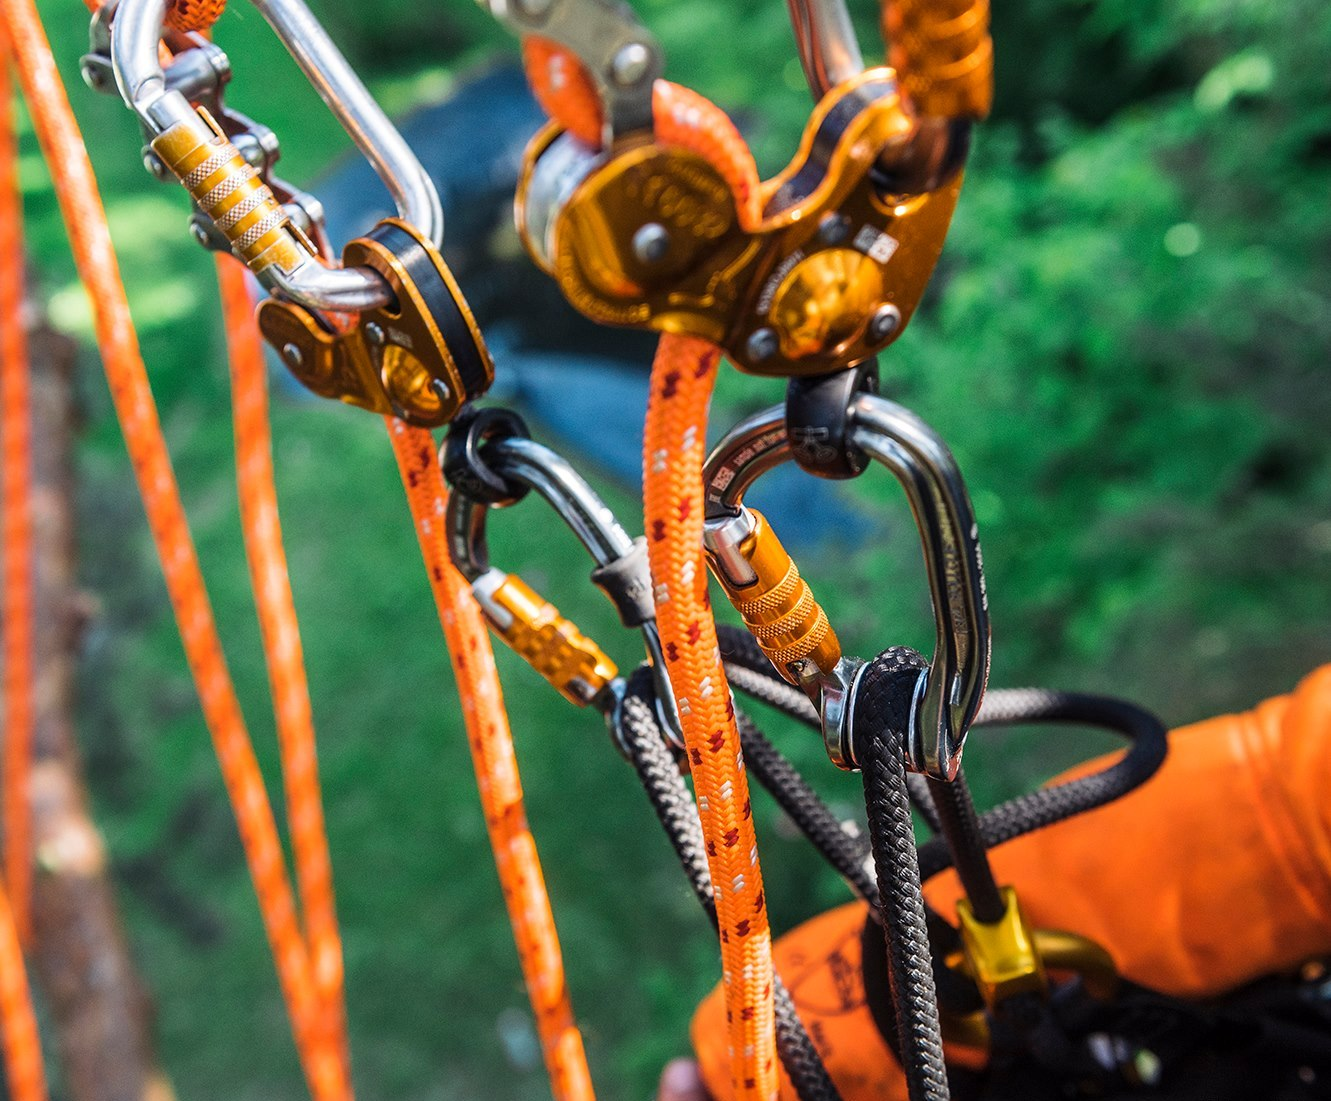 Managing Equipment in Outdoor Centres - A close up of a bicycle - Climbing Hardware